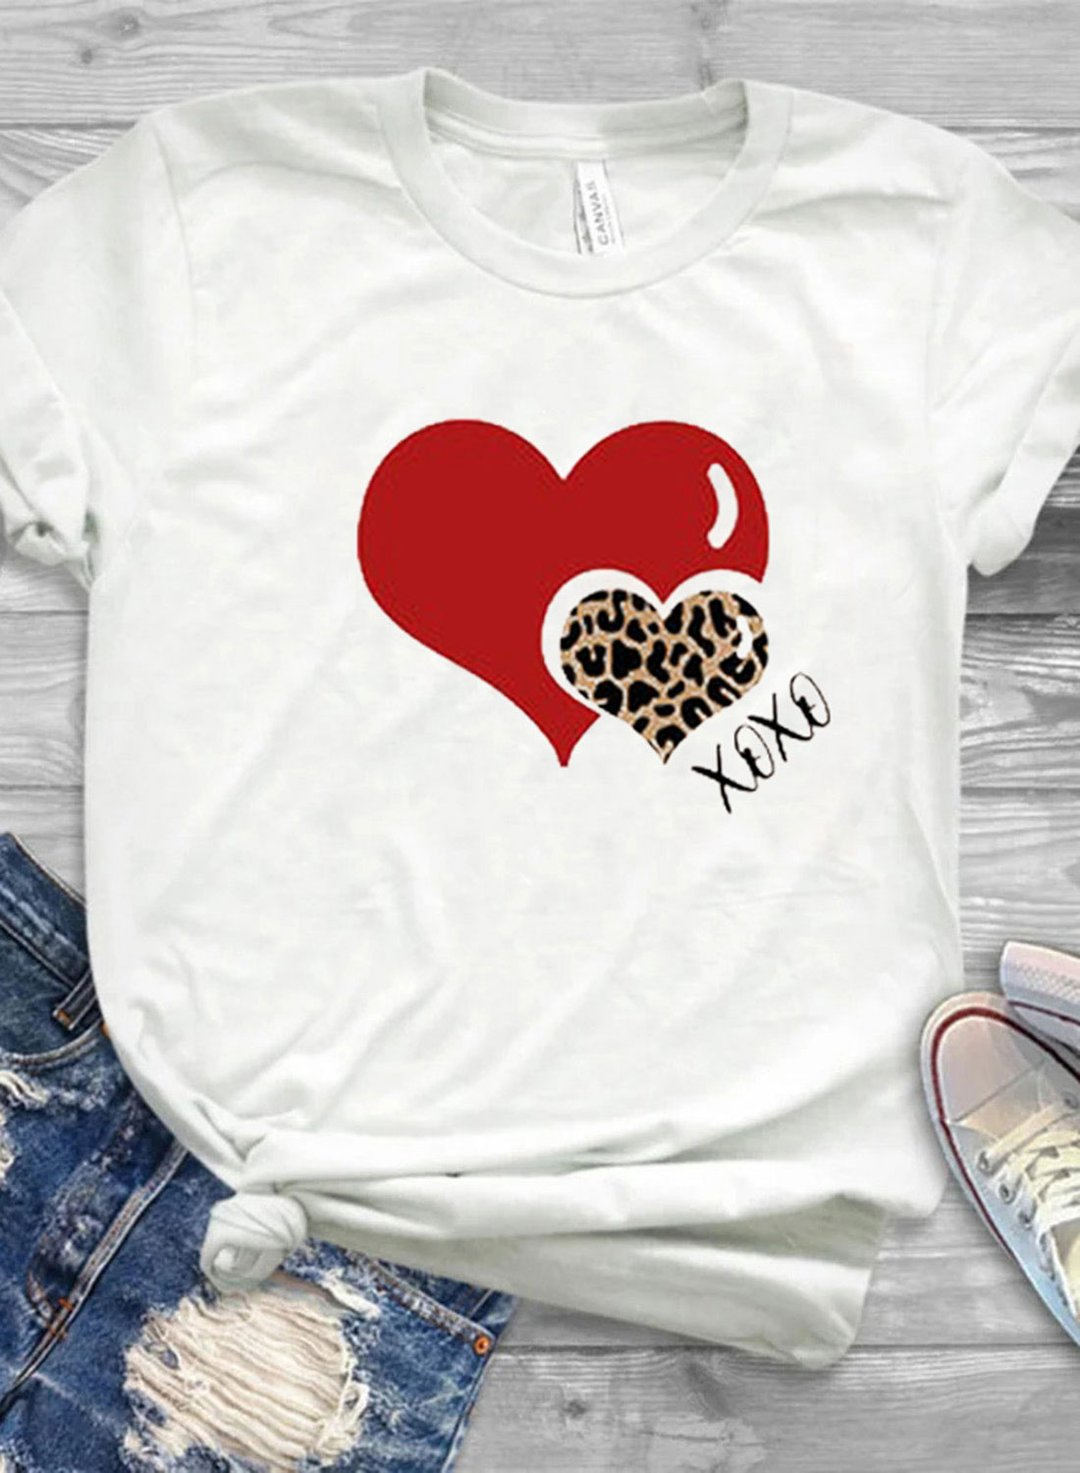 White Women's T-shirts Leopard Letter Heart-shaped Print Short Sleeve Round Neck Daily T-shirt LC2523705-1